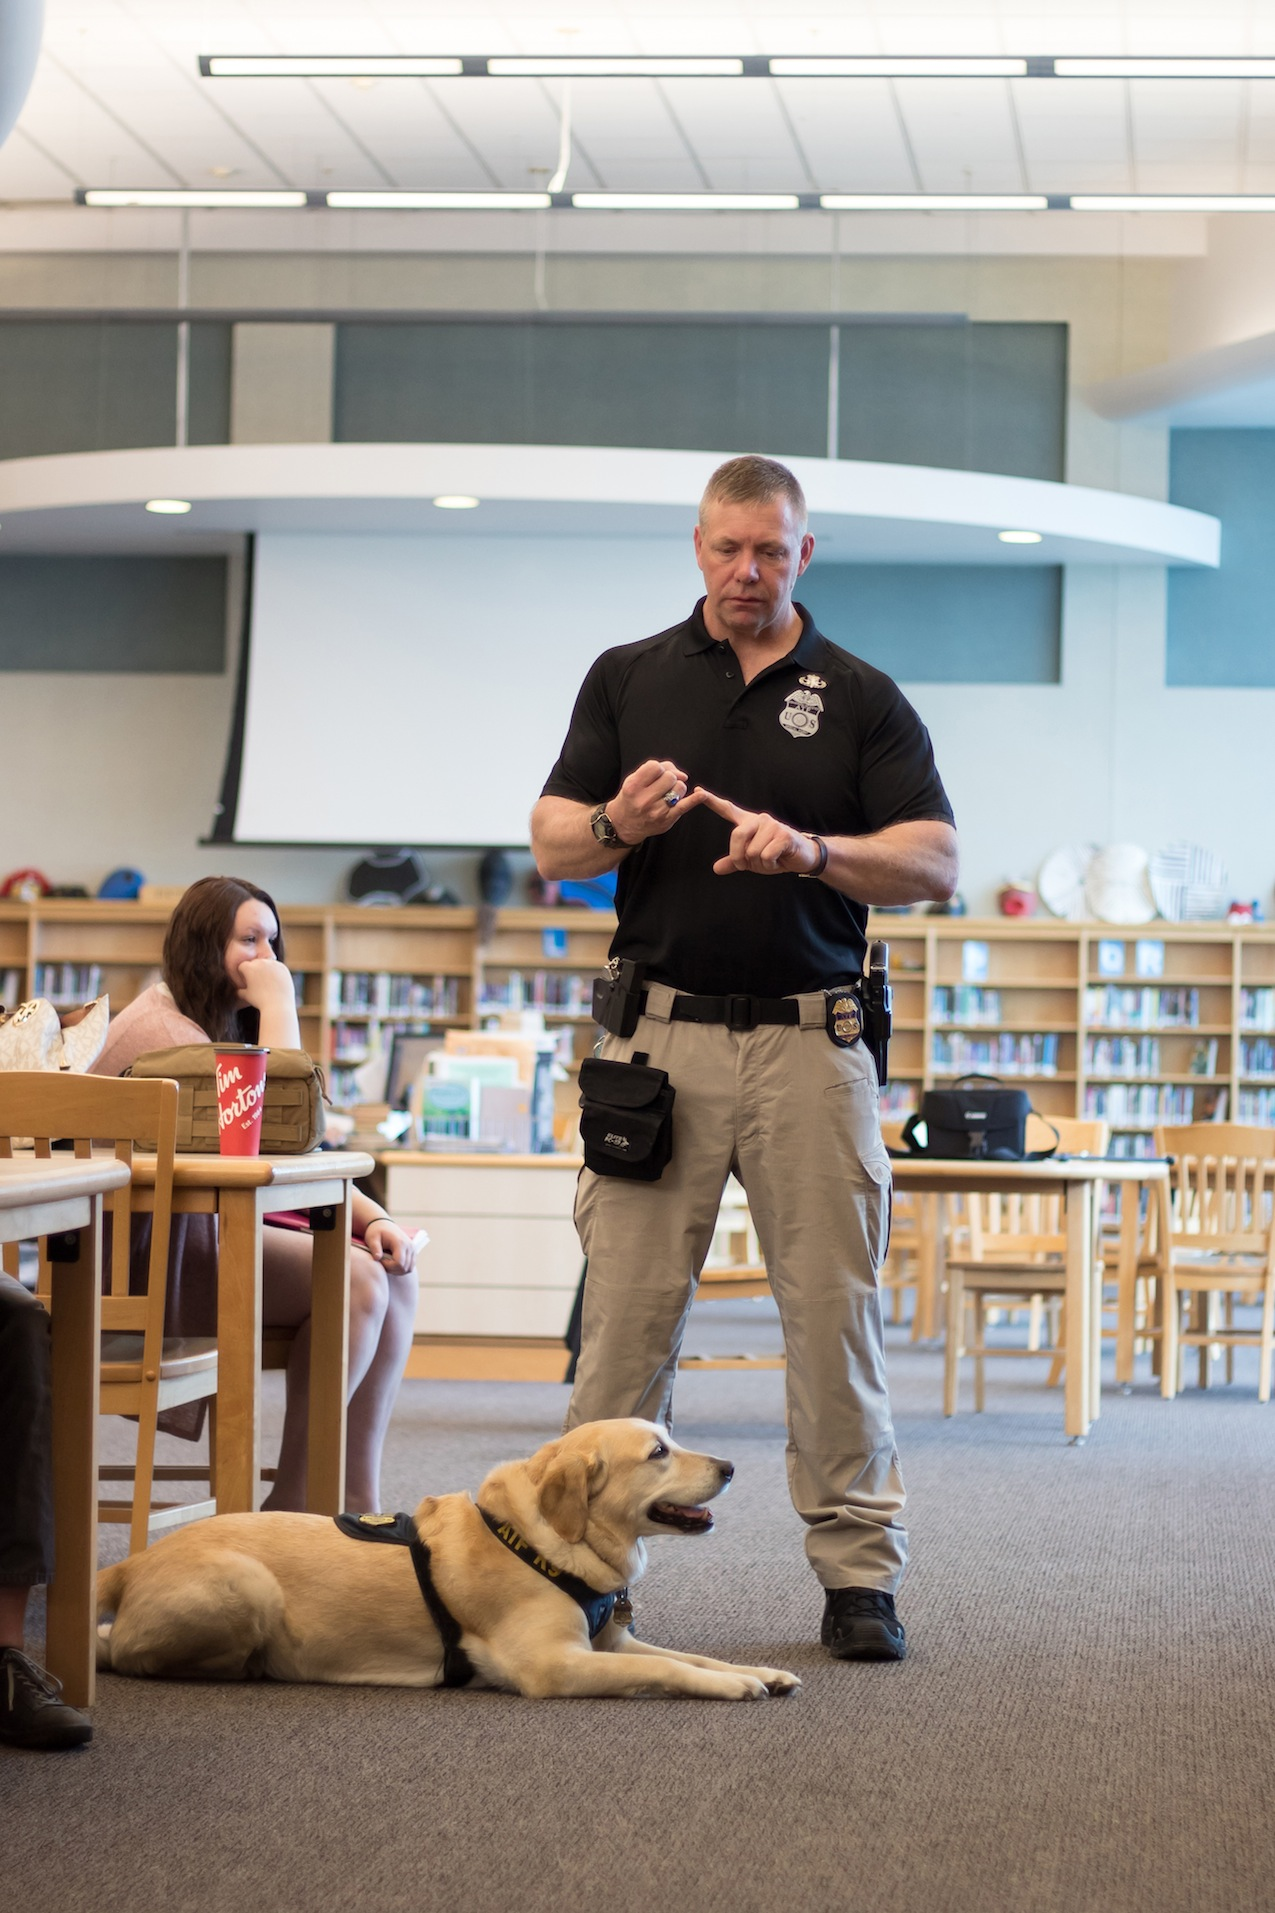 Agent Gerry O'Sullivan and K9 Dolly.